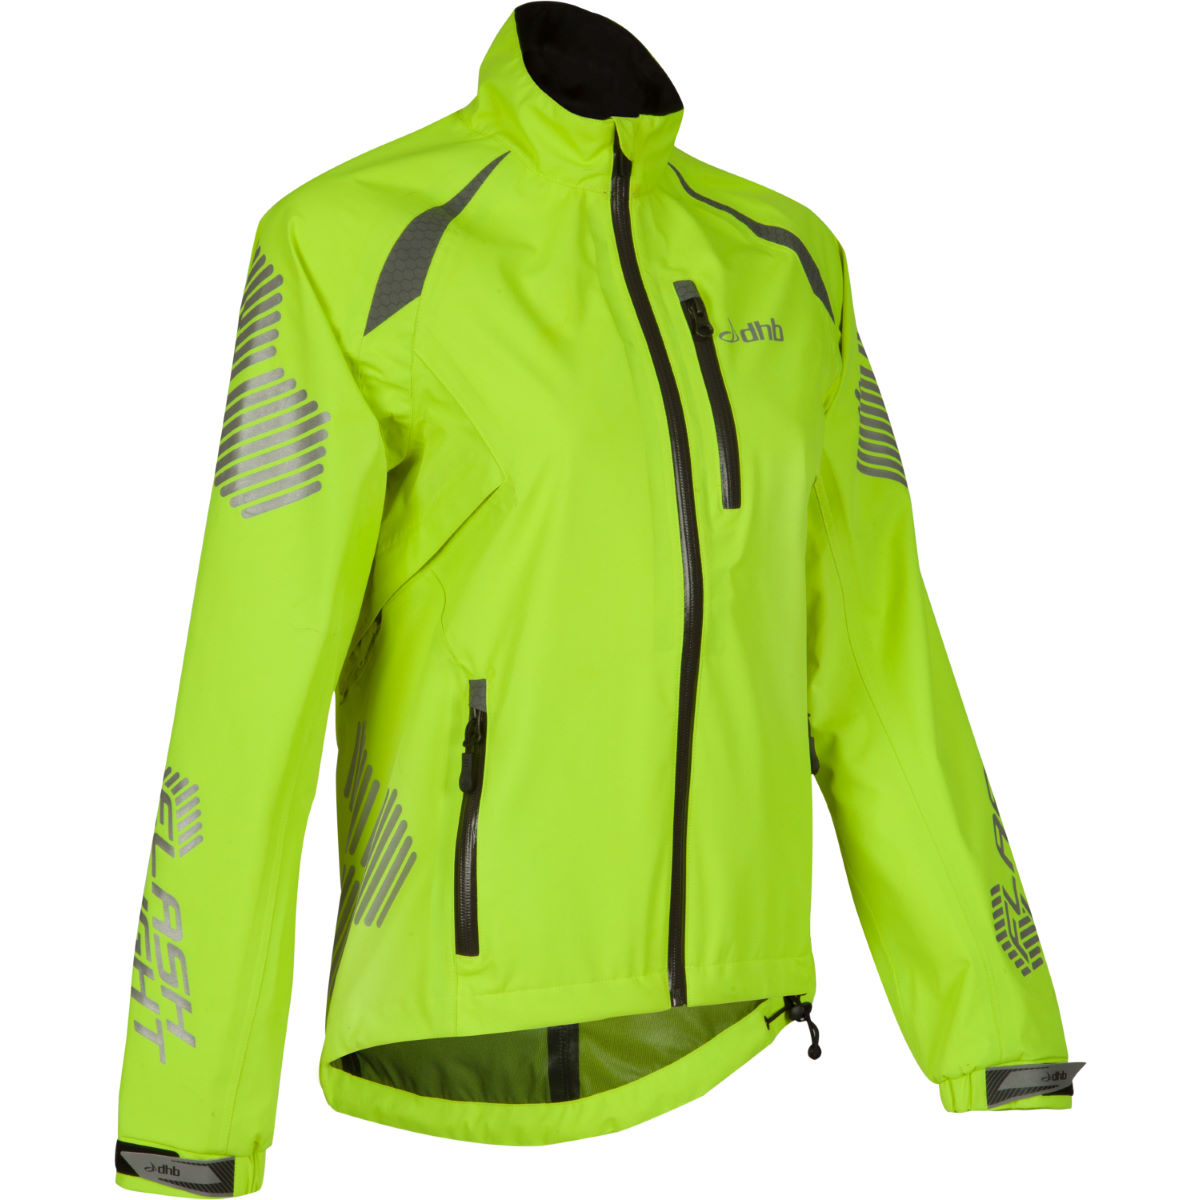 Chaqueta impermeable para mujer dhb Flashlight Highline - Impermeables - ciclismo